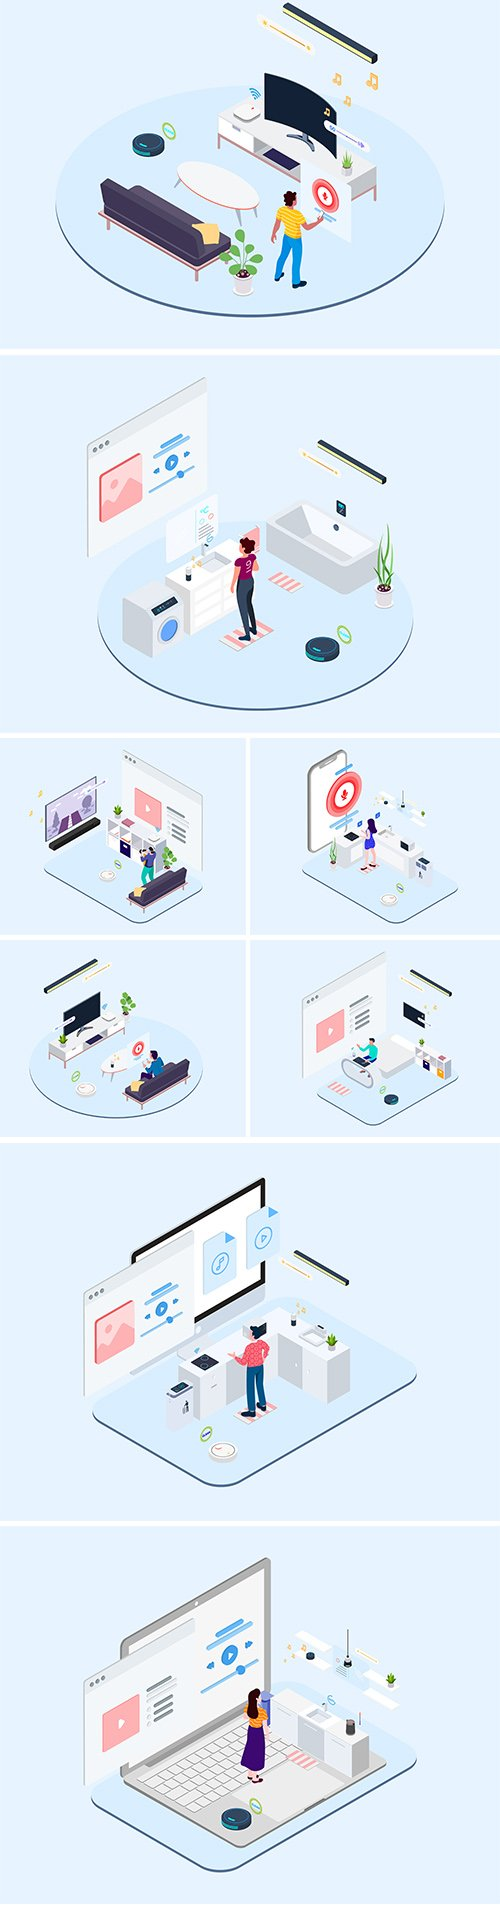 IOT Kit Isometric Vector Illustration